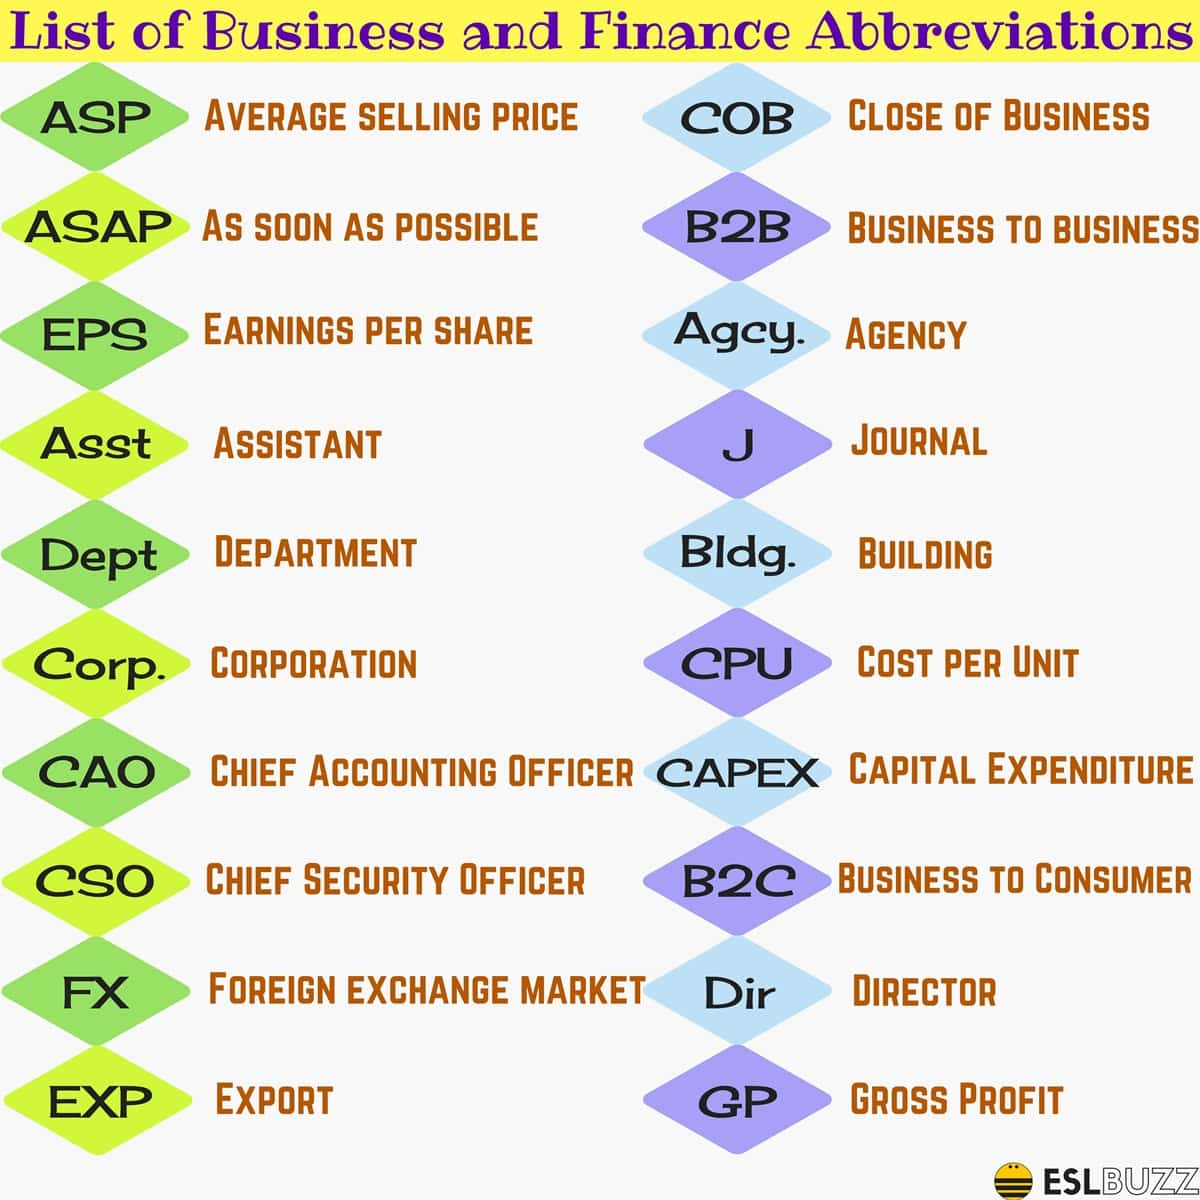 45 Useful Business Acronyms And Finance Abbreviations In